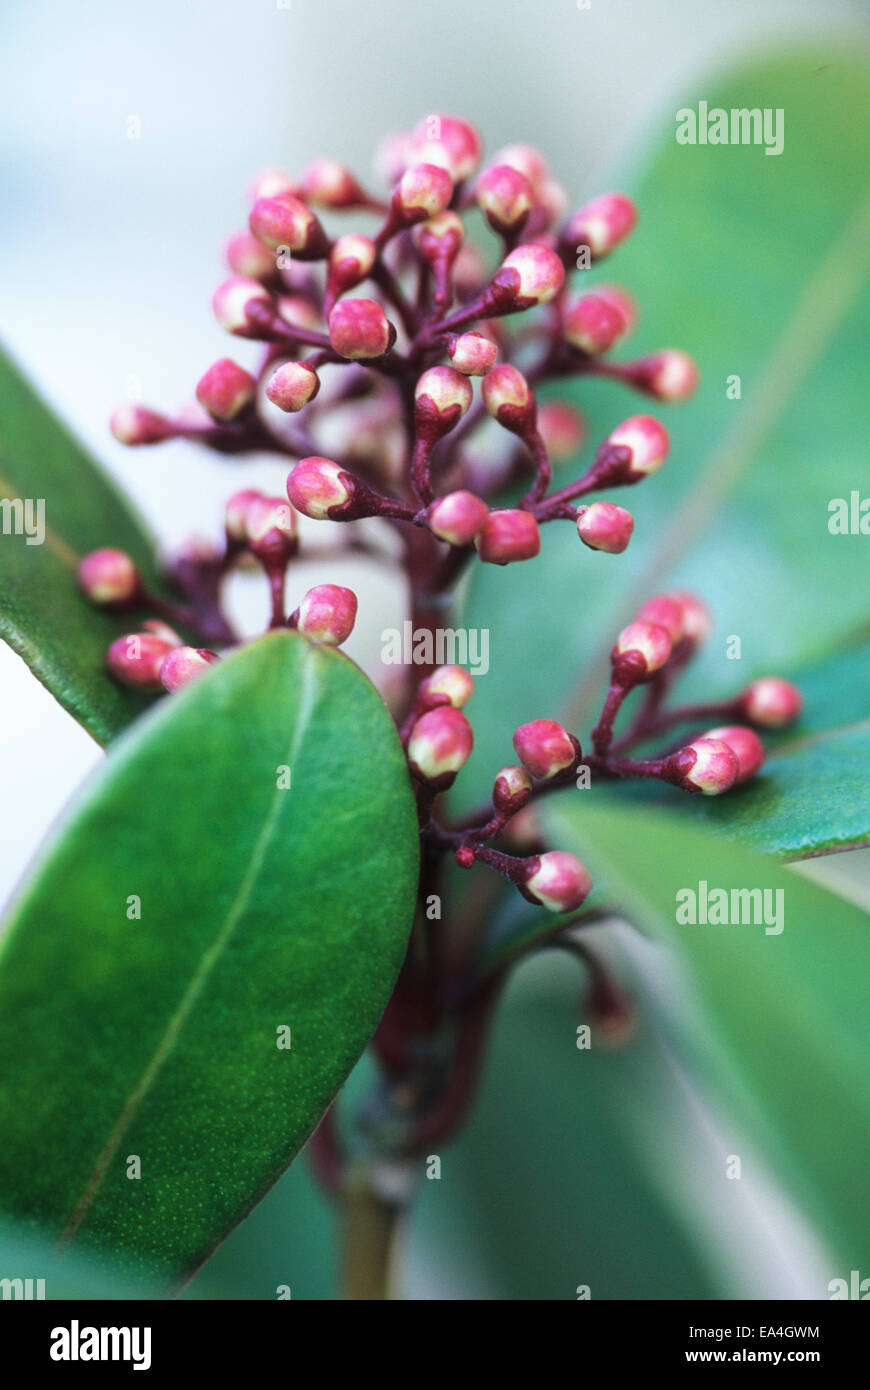 close up image of Skimmia Japonica Rubella flower head in bud - Stock Image